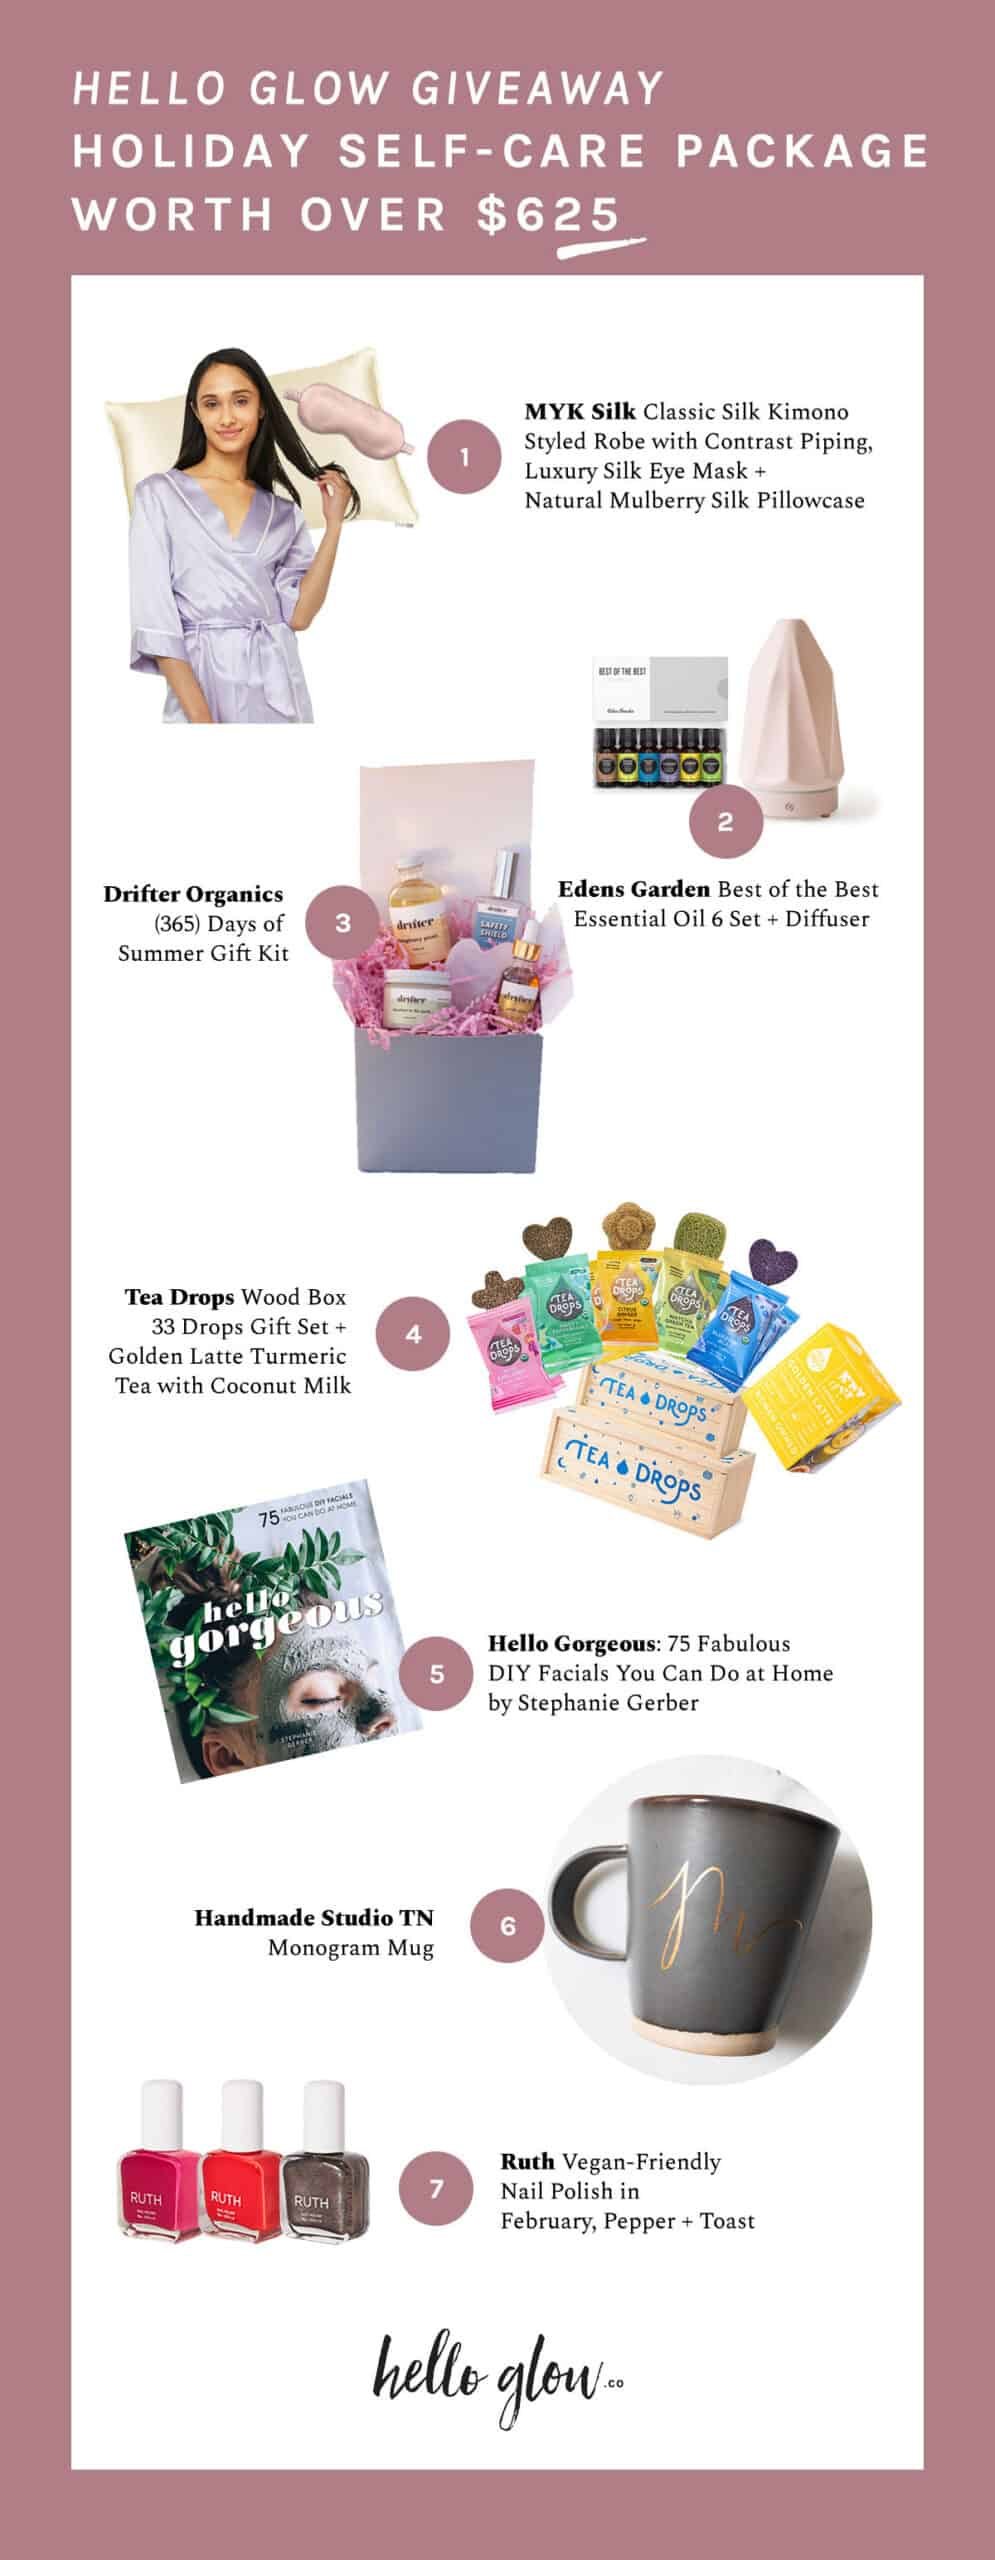 Holiday Self-Care Giveaway